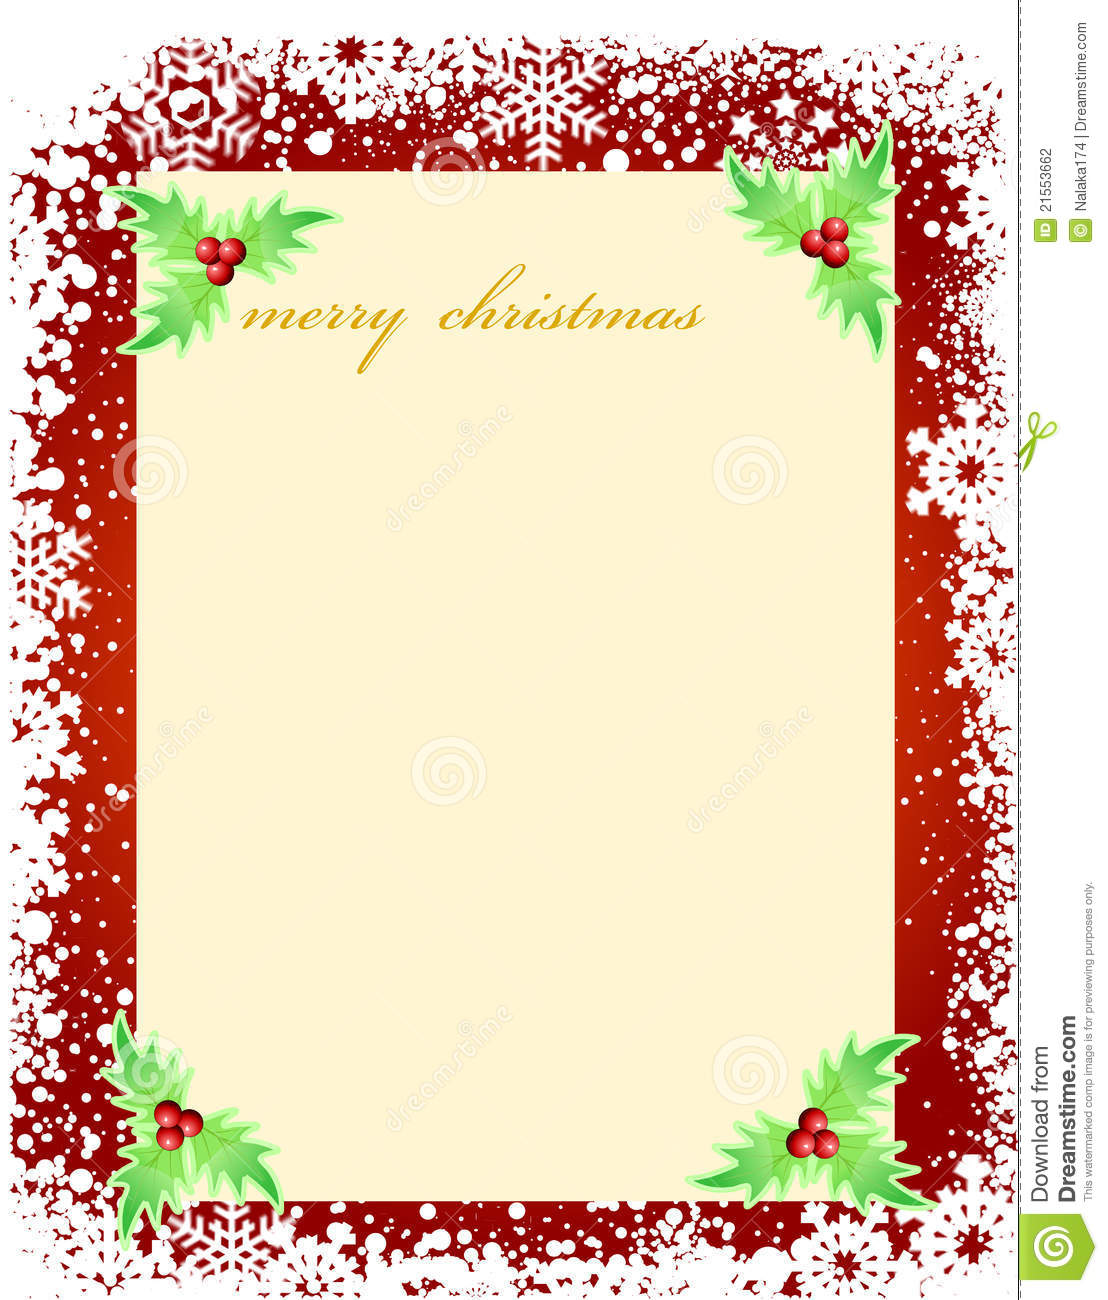 Stock Photography: Blank template for Christmas greetings card. Image ...